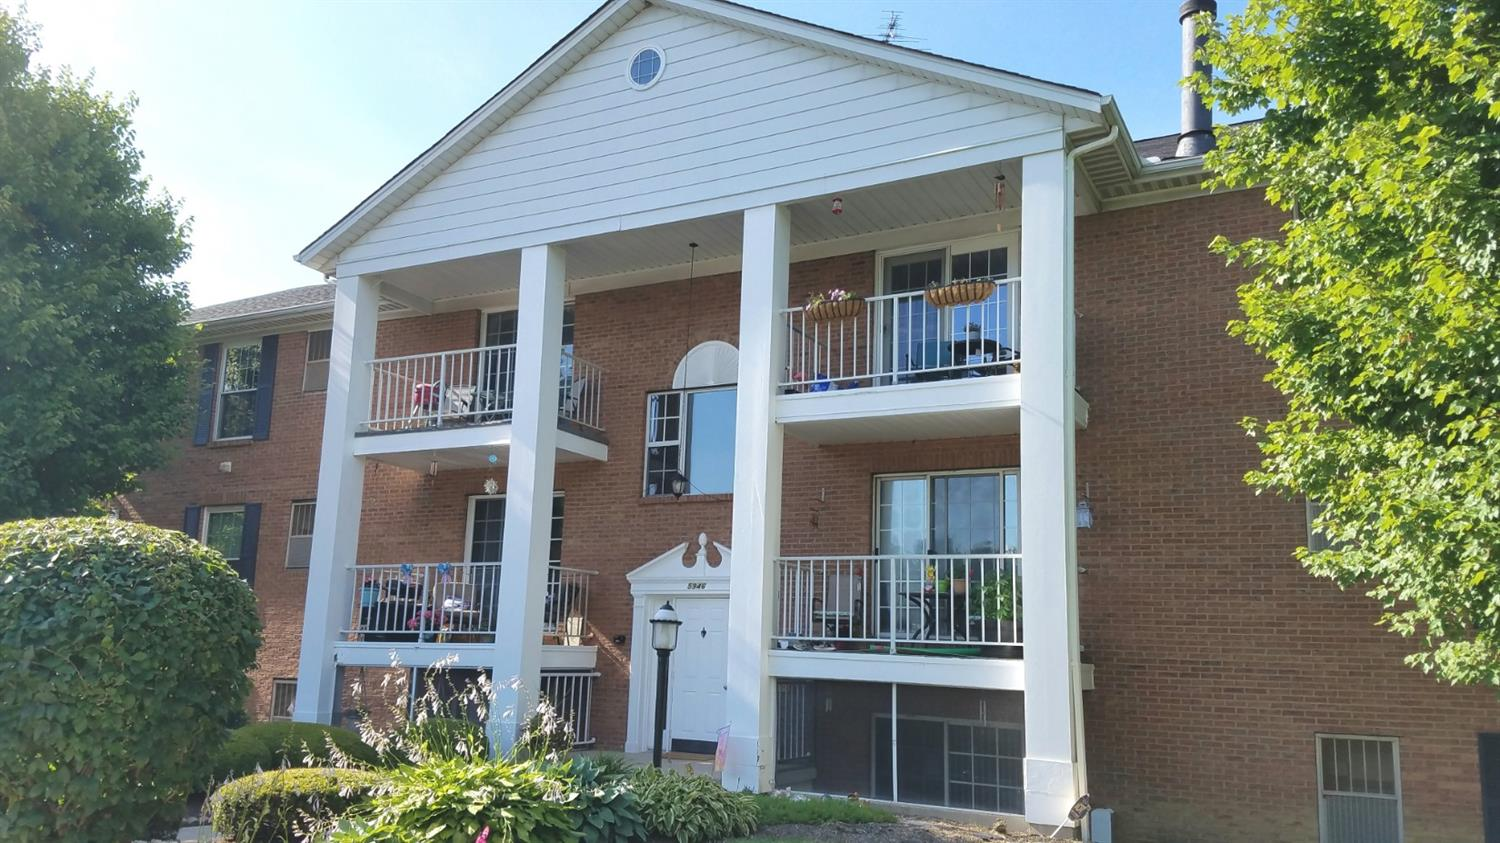 Photo 1 for 5946 Harrison Ave #67 Bridgetown, OH 45248